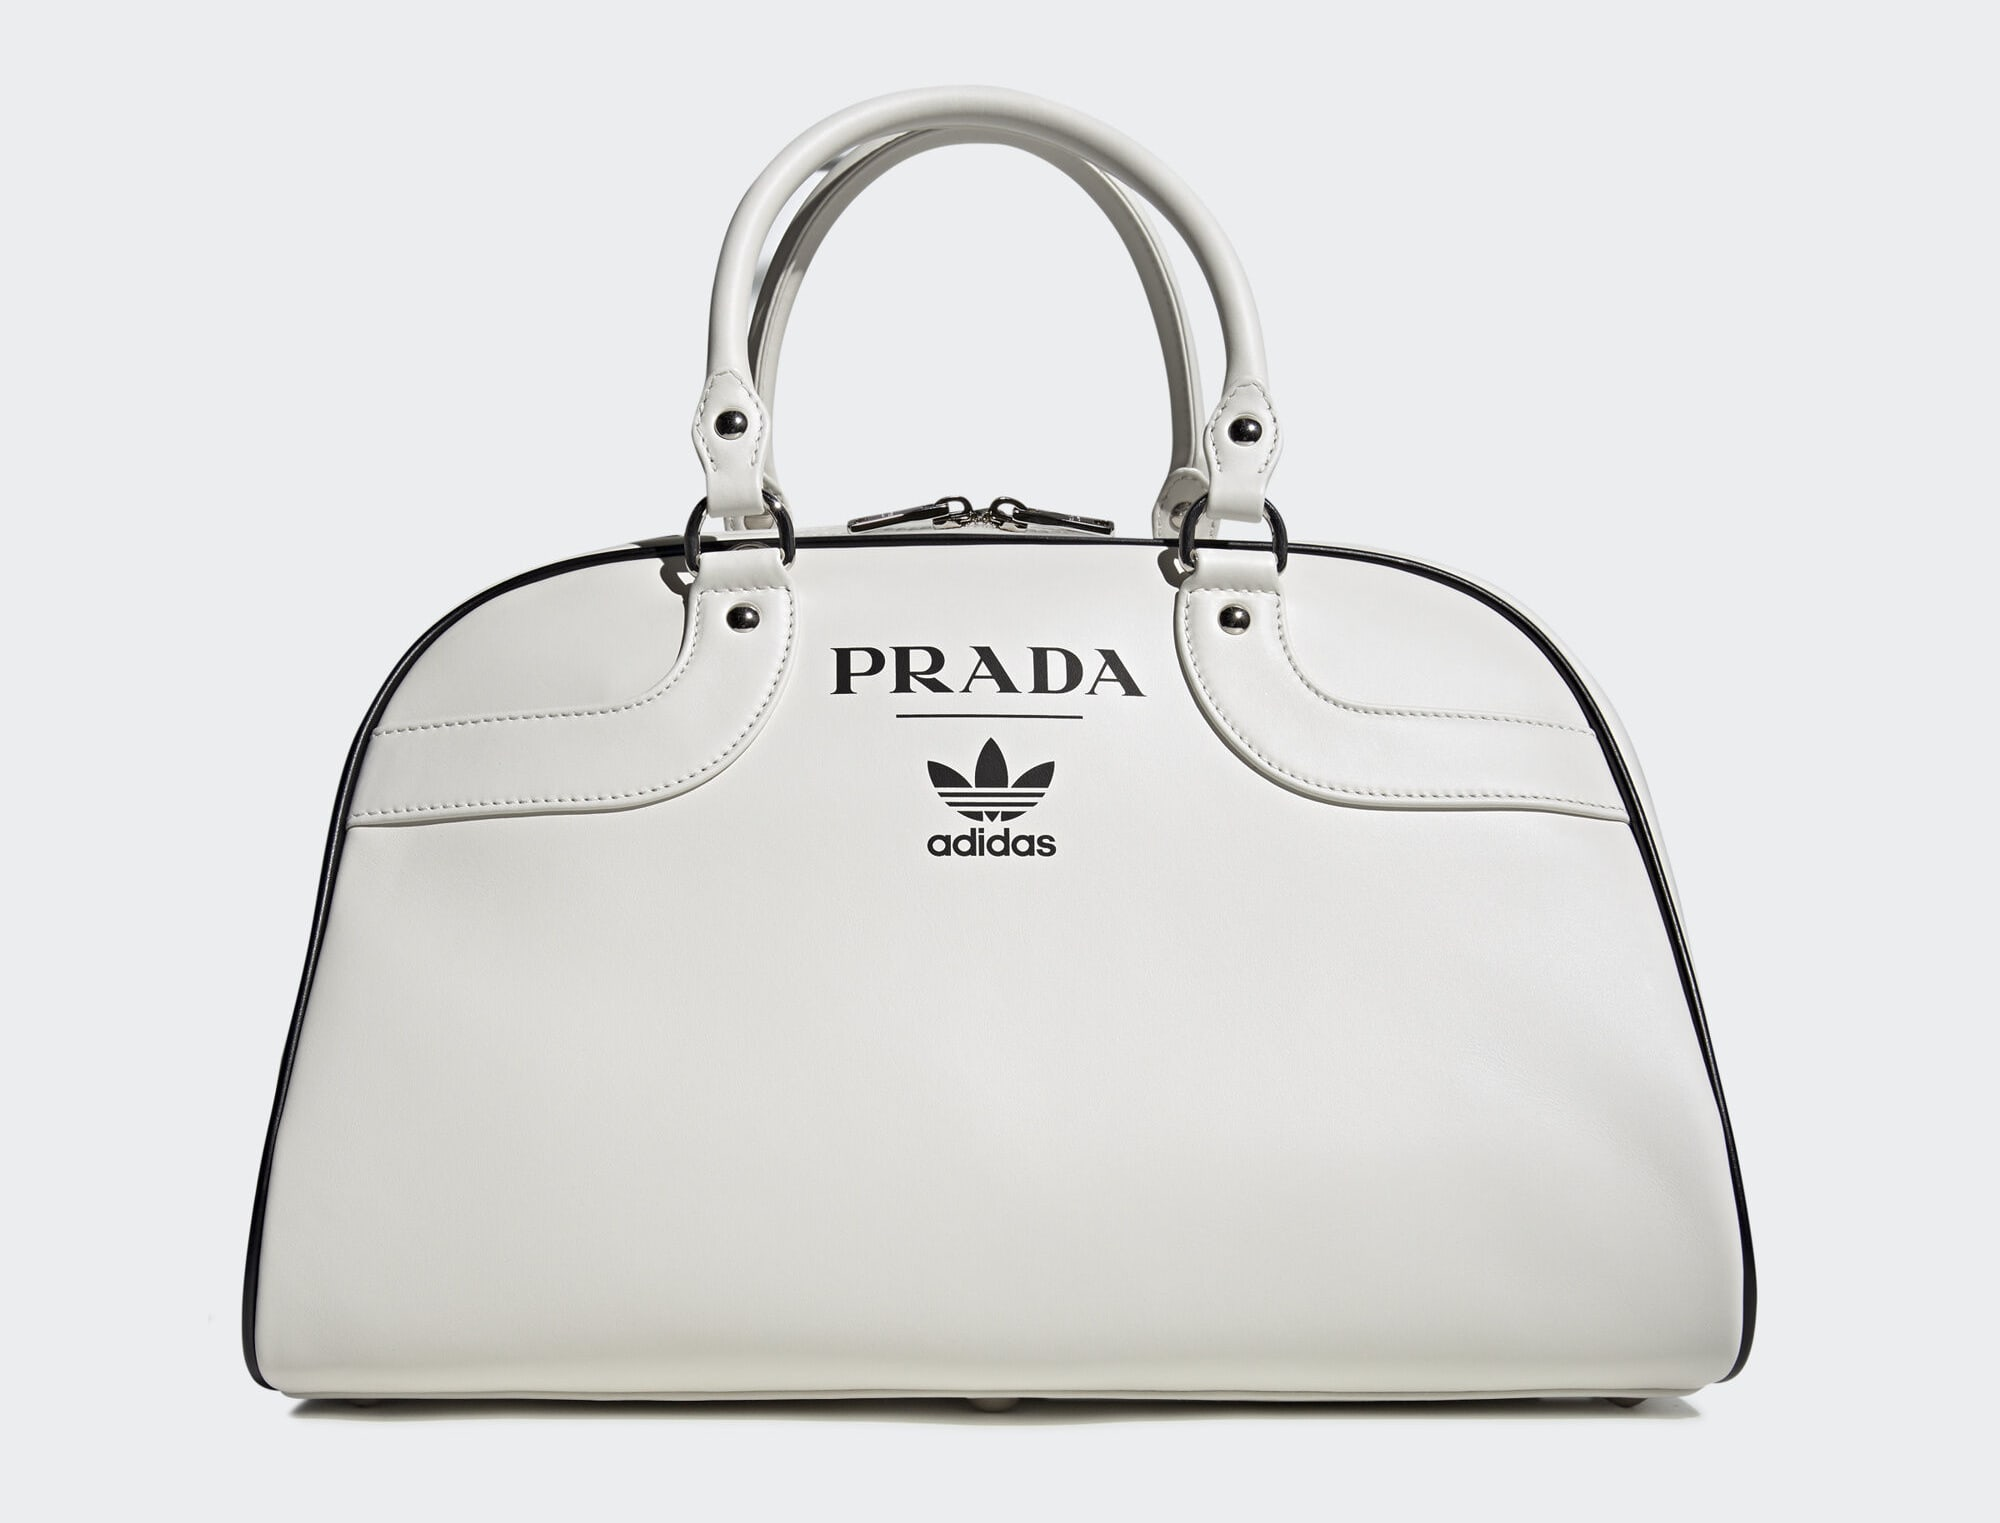 prada-adidas-leather-bag-fw6683-front